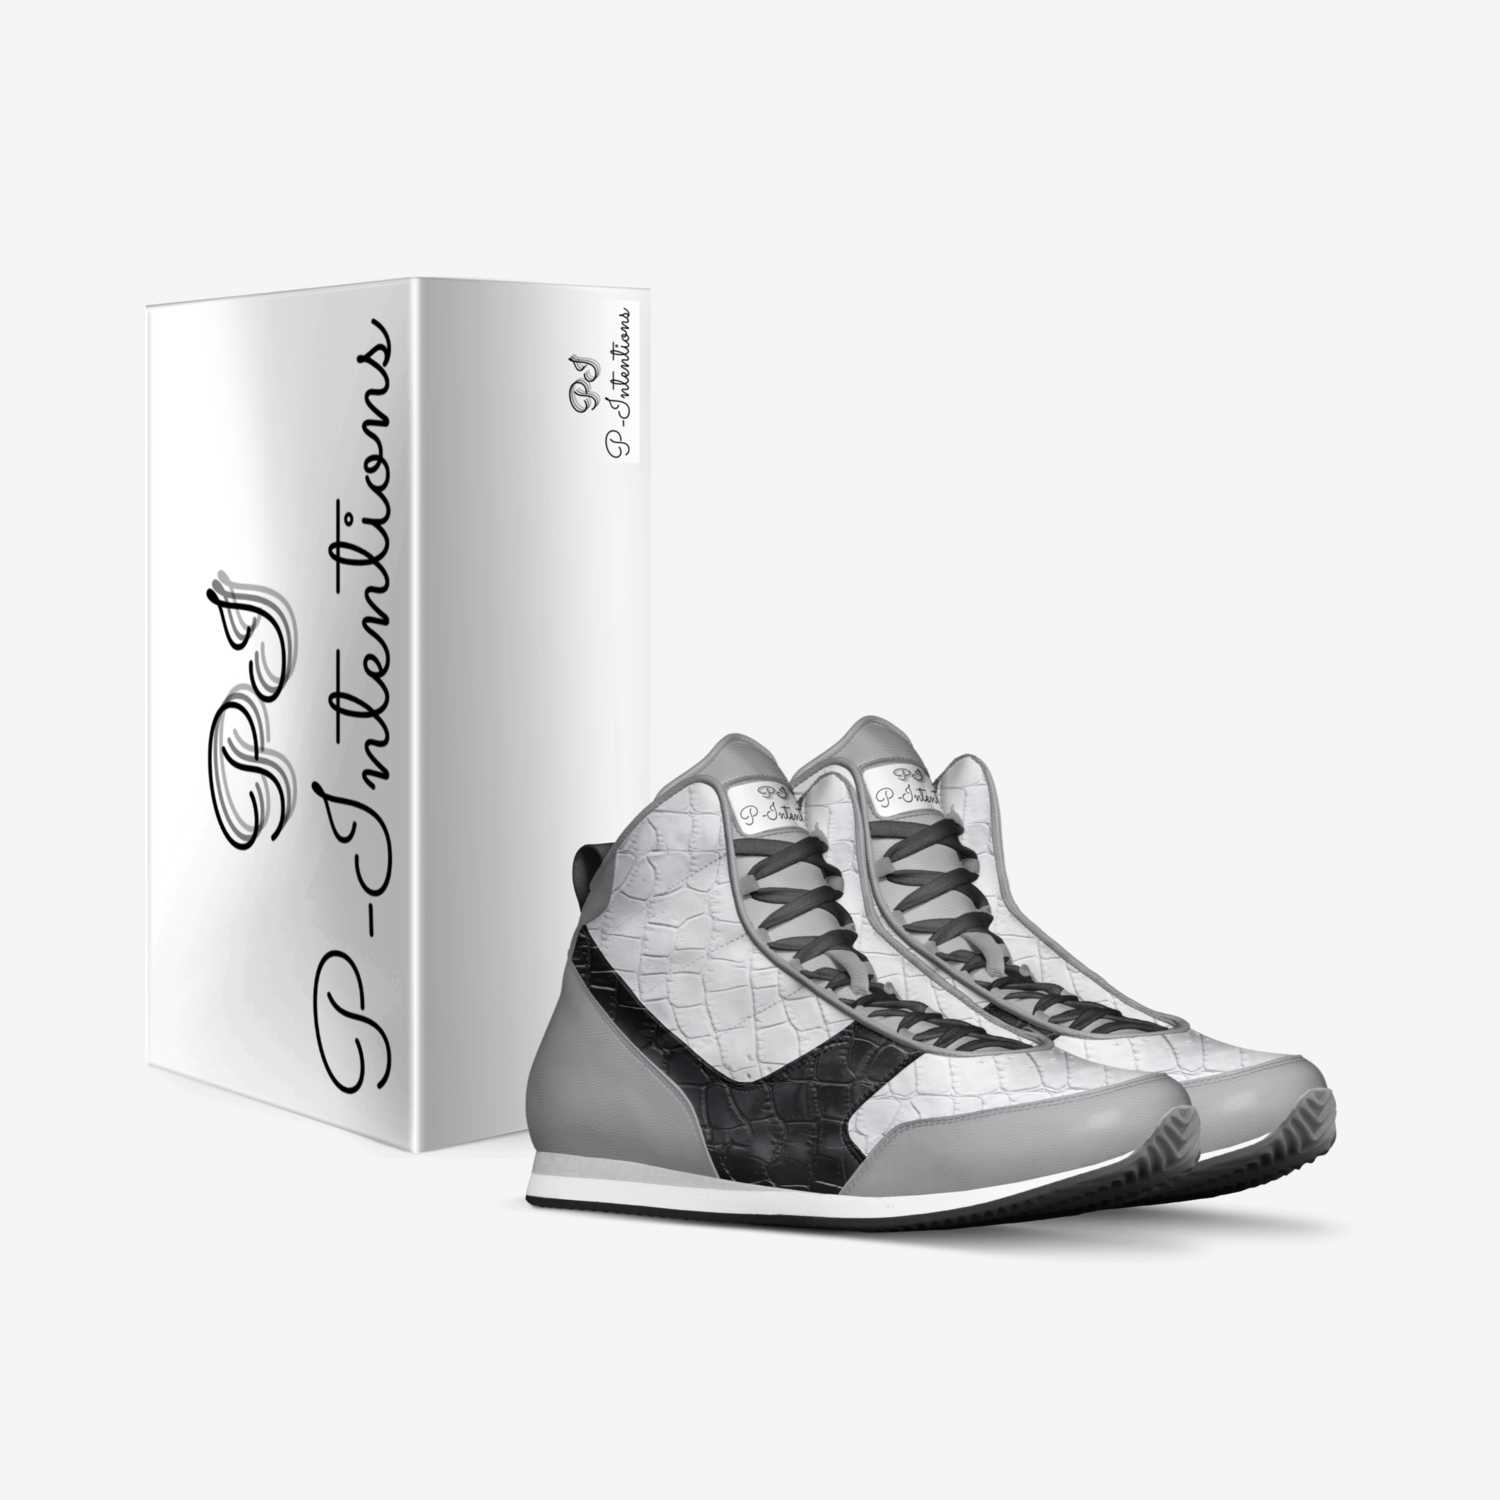 P-intentions custom made in Italy shoes by Hue Mcdowell | Box view